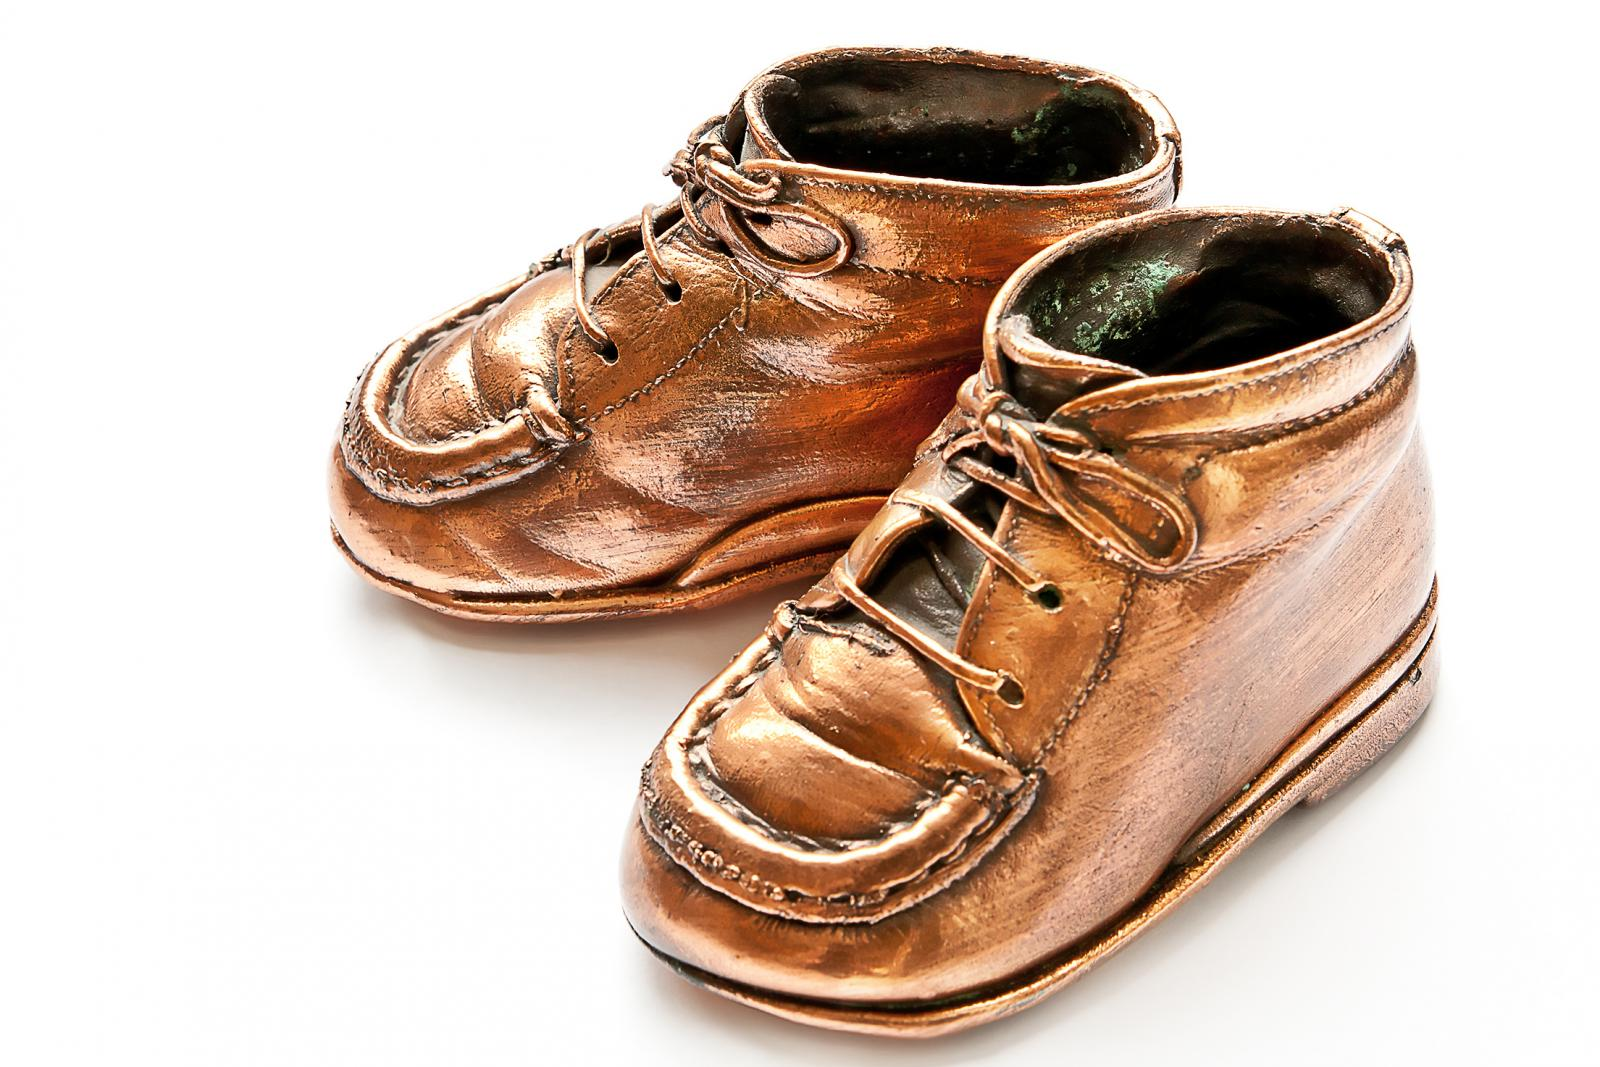 A pair of bronzed baby shoes